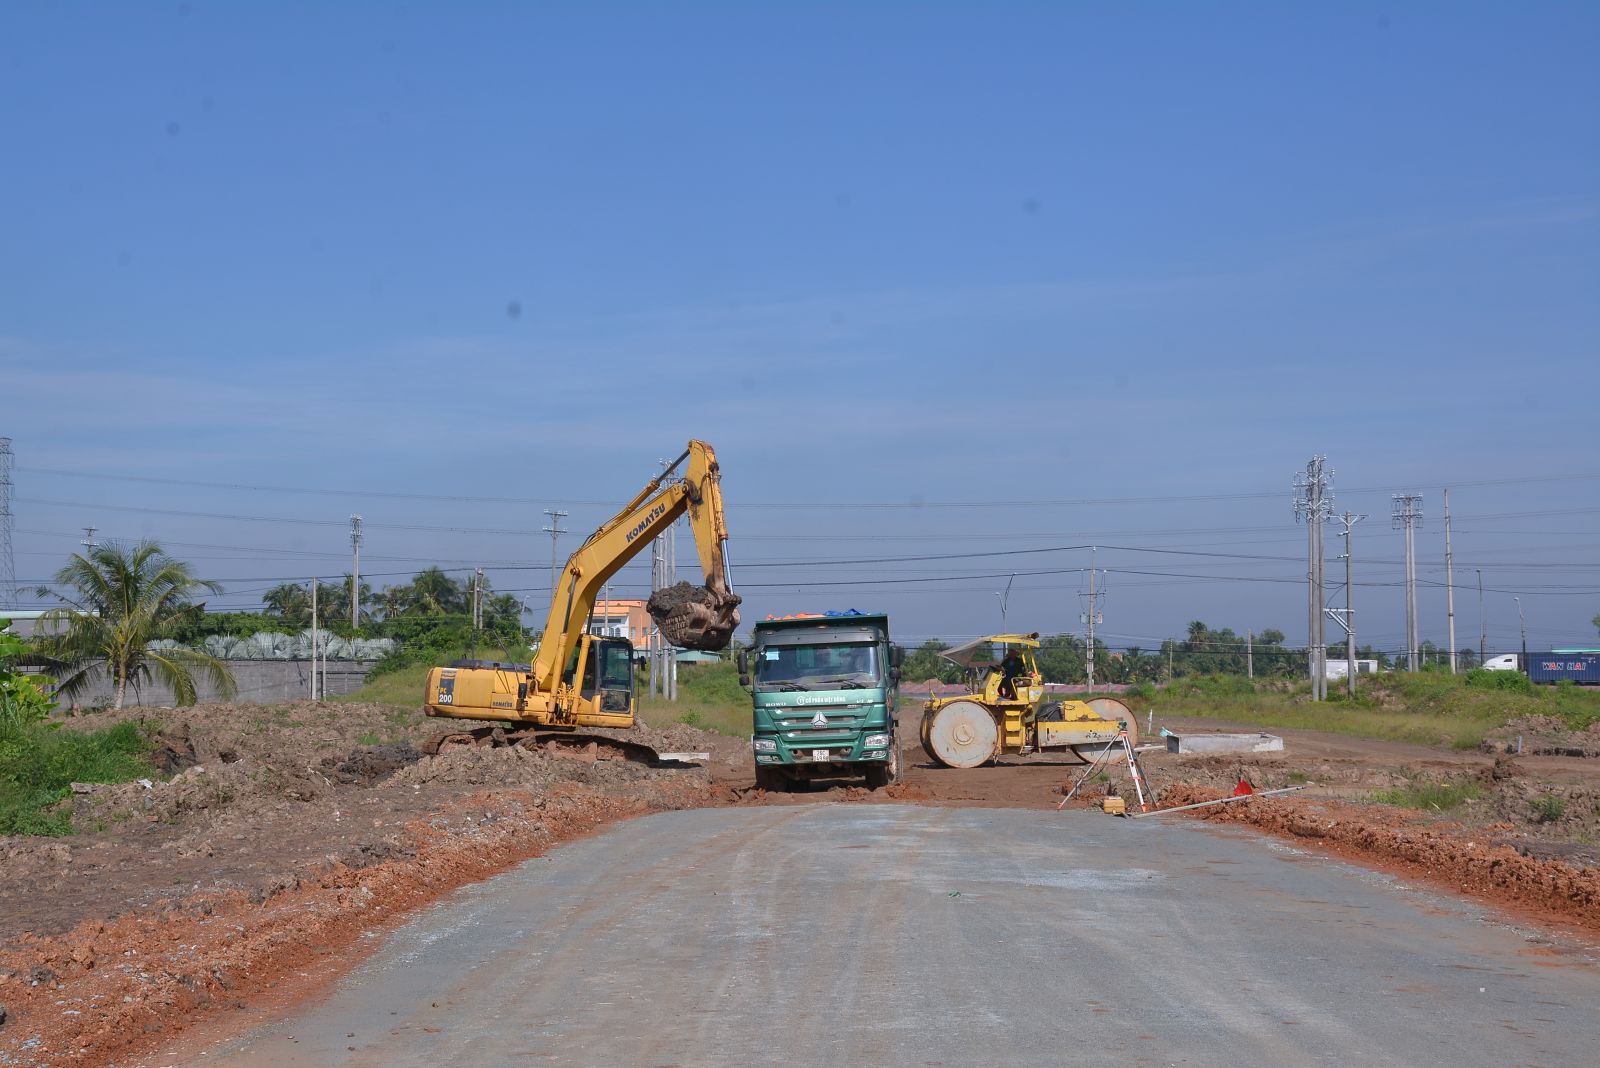 The traffic works will contribute to promoting the province's socio-economic development when they are completed